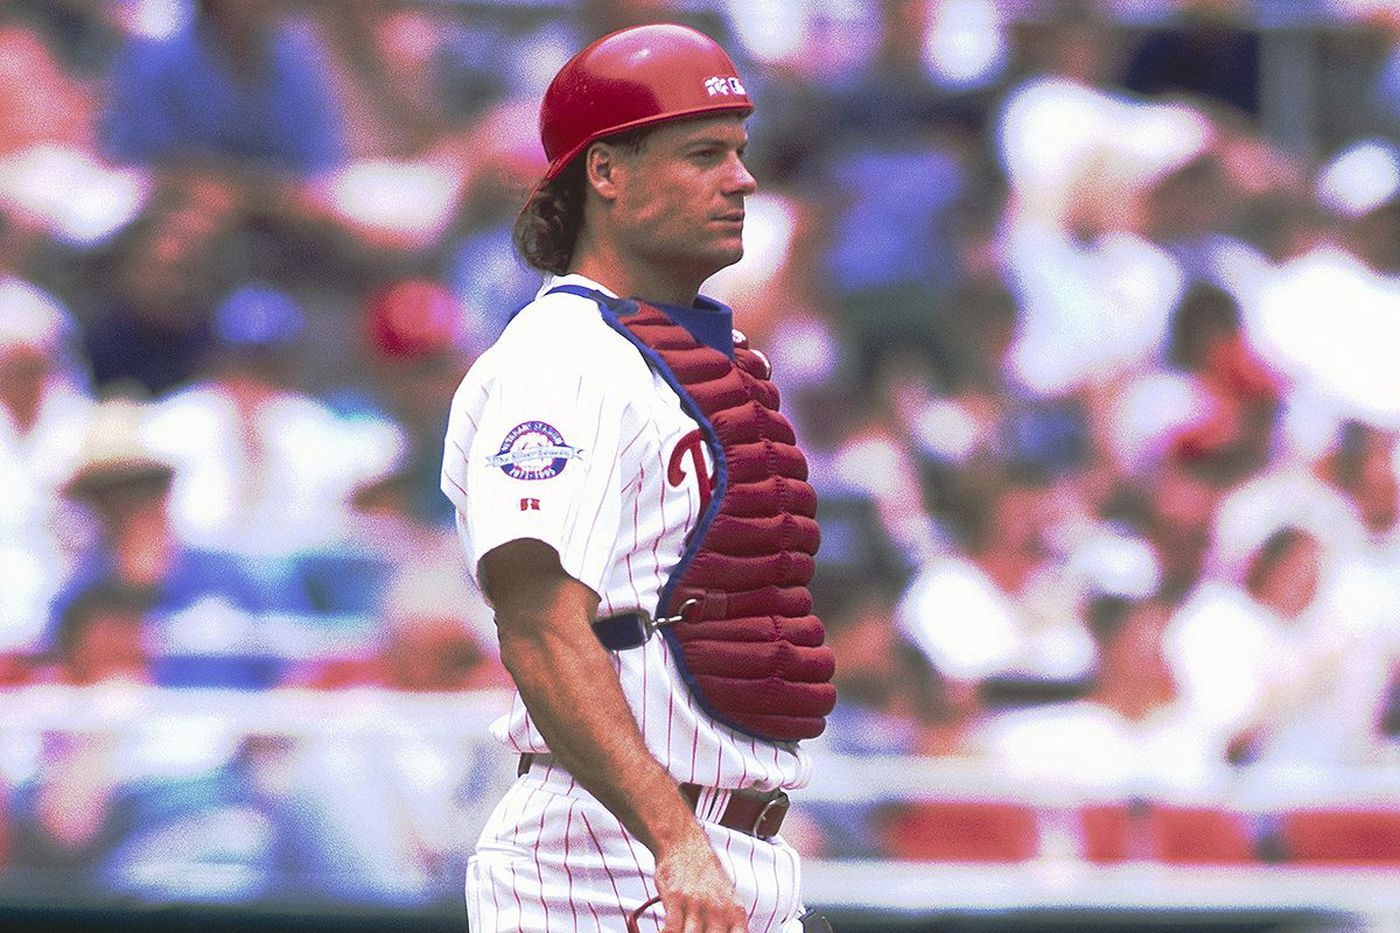 Darren Daulton by the numbers